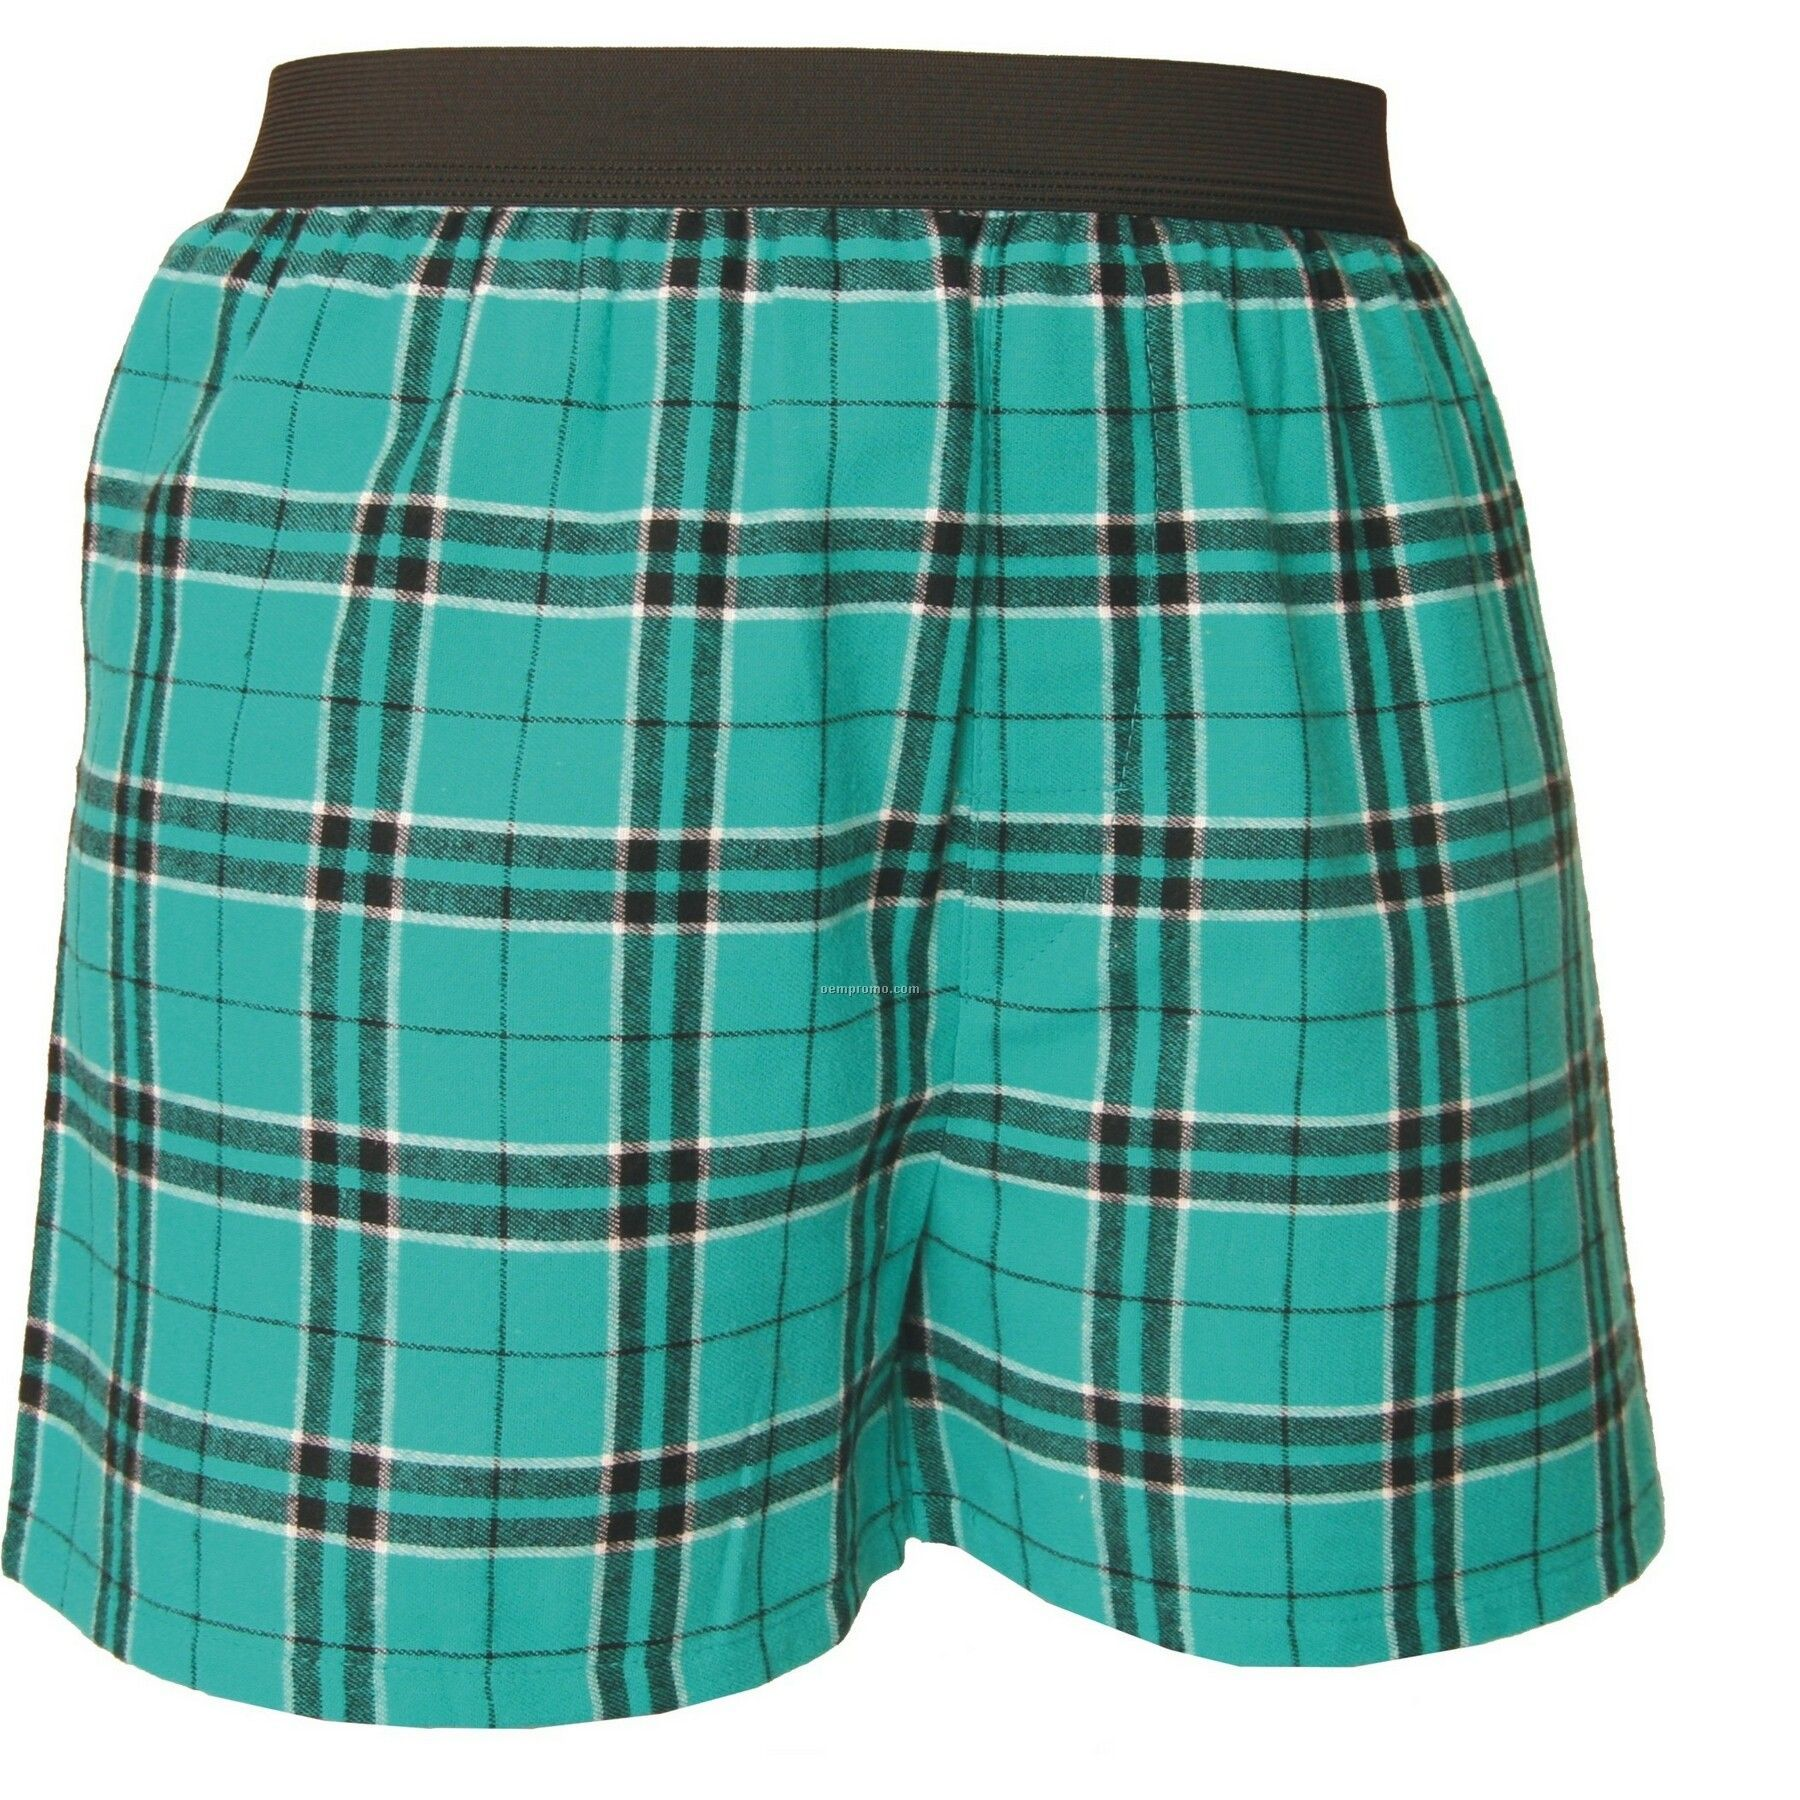 Adult Teal Green/Black Plaid Classic Boxer Short